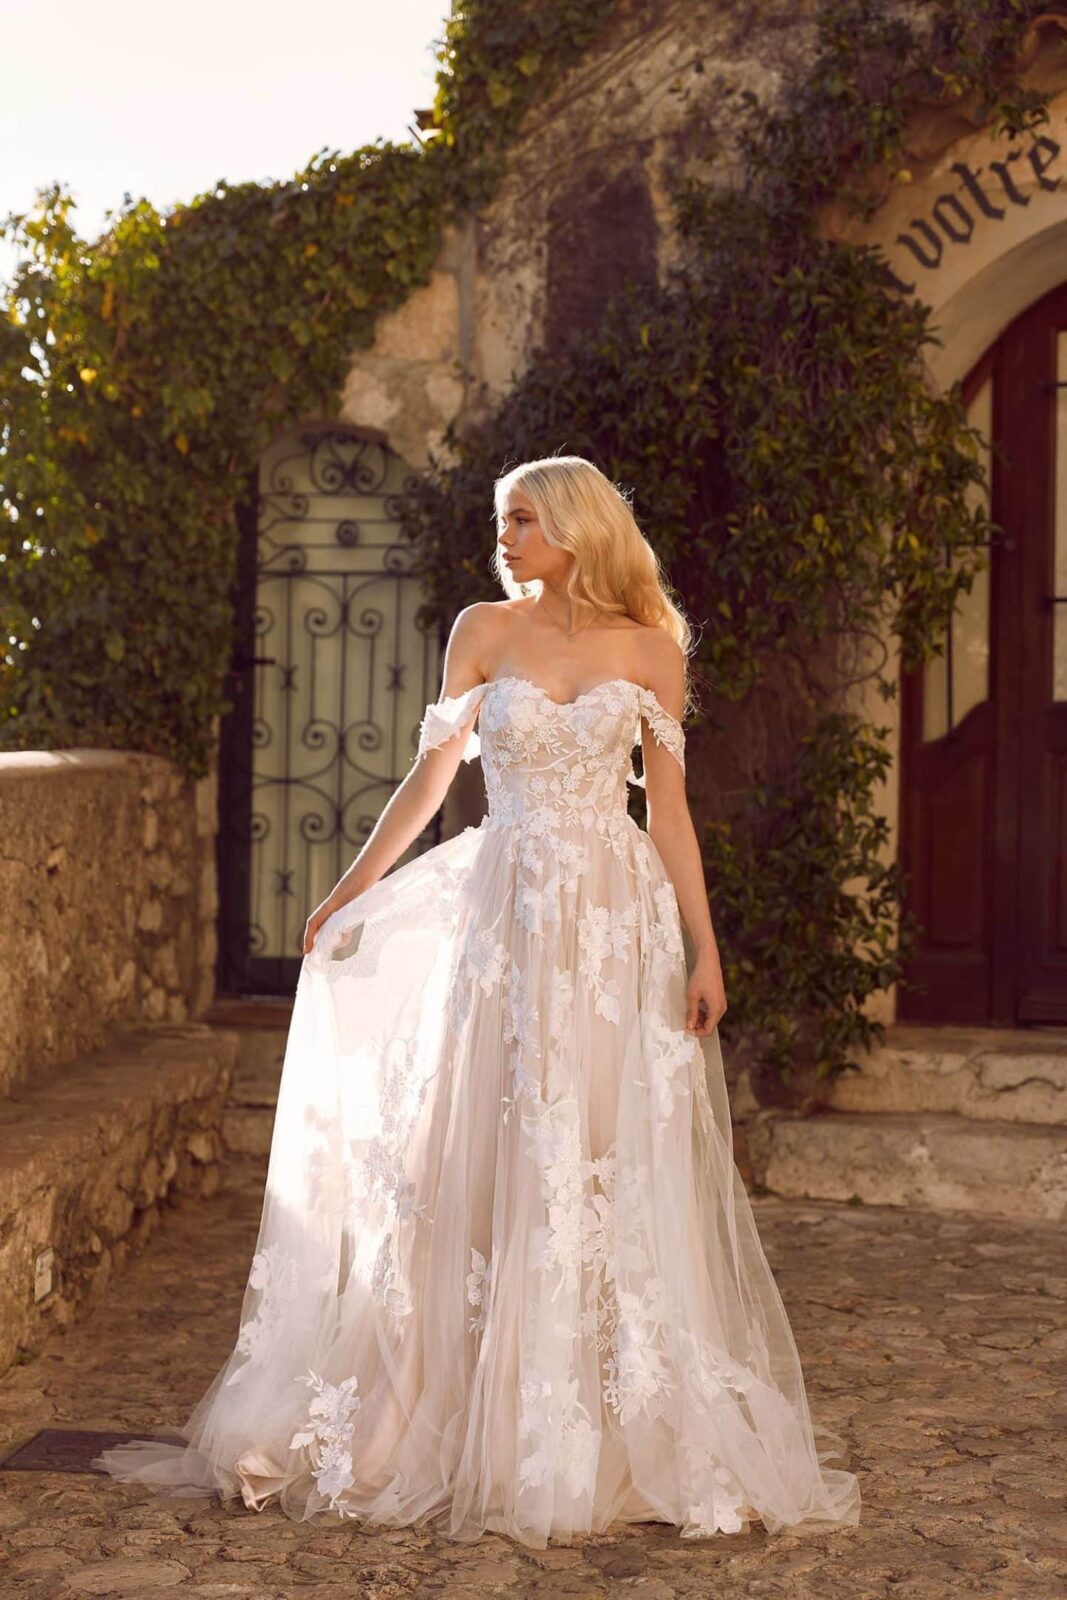 ELORA-ML8518-LACE-AND-TULLE-GOWN-WITH-FITTED-BODICE-AND-FLOATY-TULLE-SKIRT-WITH-DETACHABLE-OFF-SHOULDER-STRAPS-WEDDING-DRESS-MADI-LANE-BRI